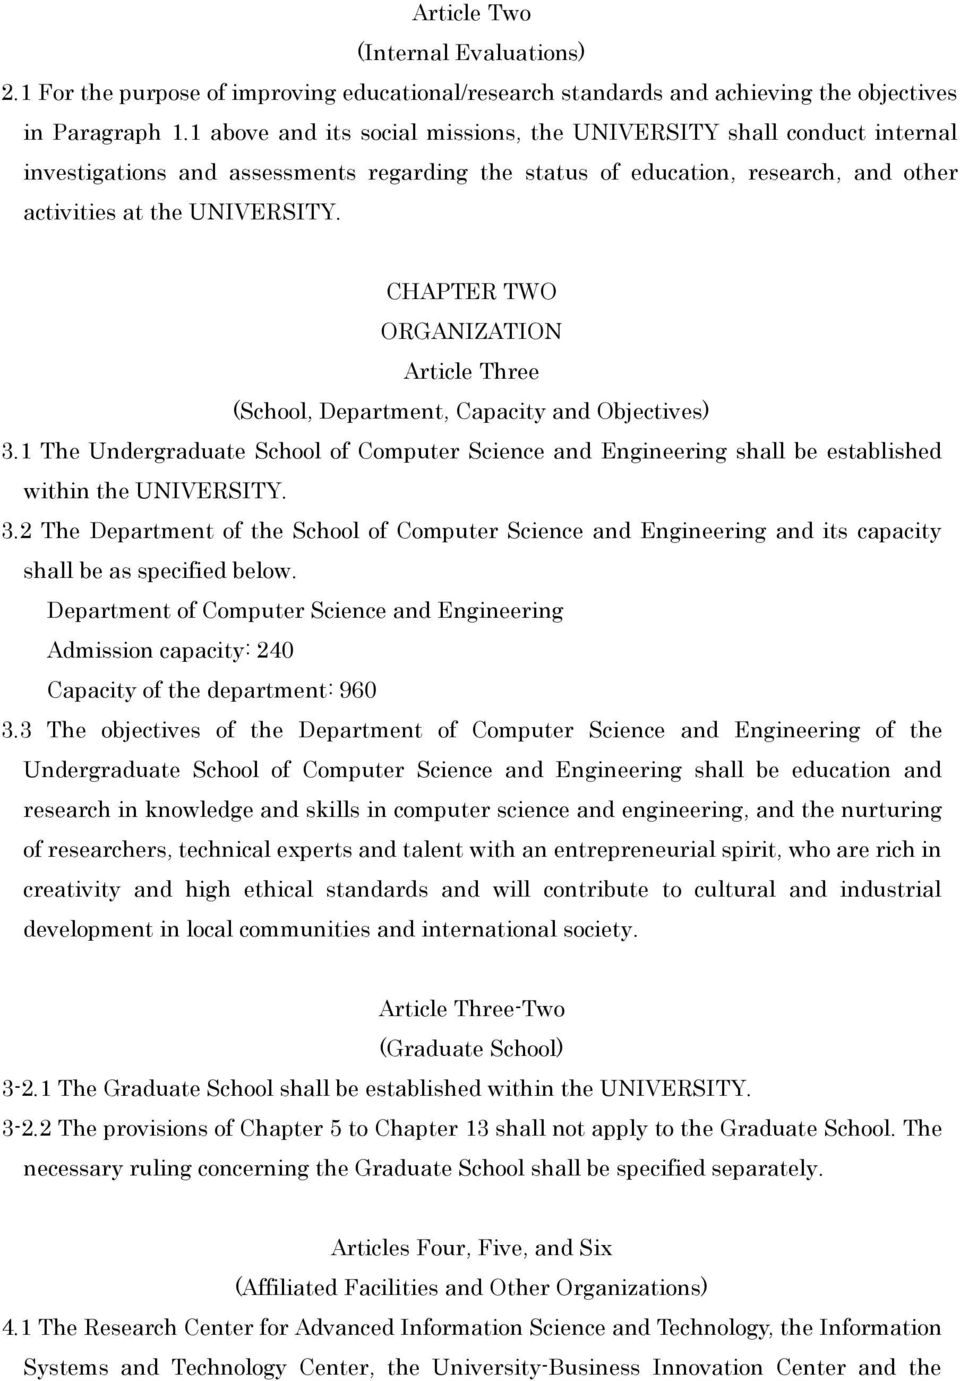 CHAPTER TWO ORGANIZATION Article Three (School, Department, Capacity and Objectives) 3.1 The Undergraduate School of Computer Science and Engineering shall be established within the UNIVERSITY. 3.2 The Department of the School of Computer Science and Engineering and its capacity shall be as specified below.